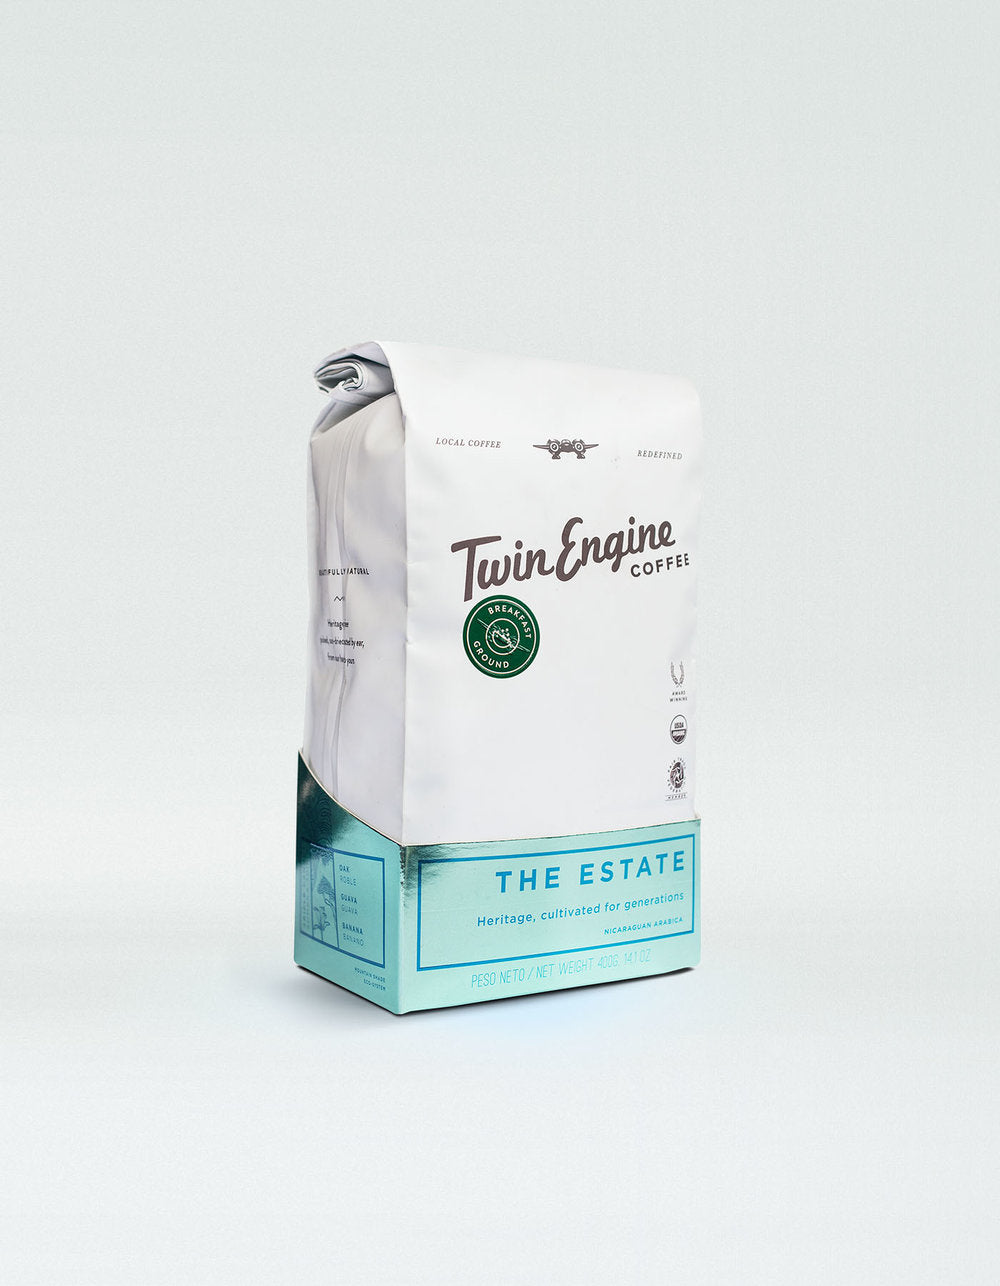 Twin Engine Coffee - Estate - Small Things Fair Trade